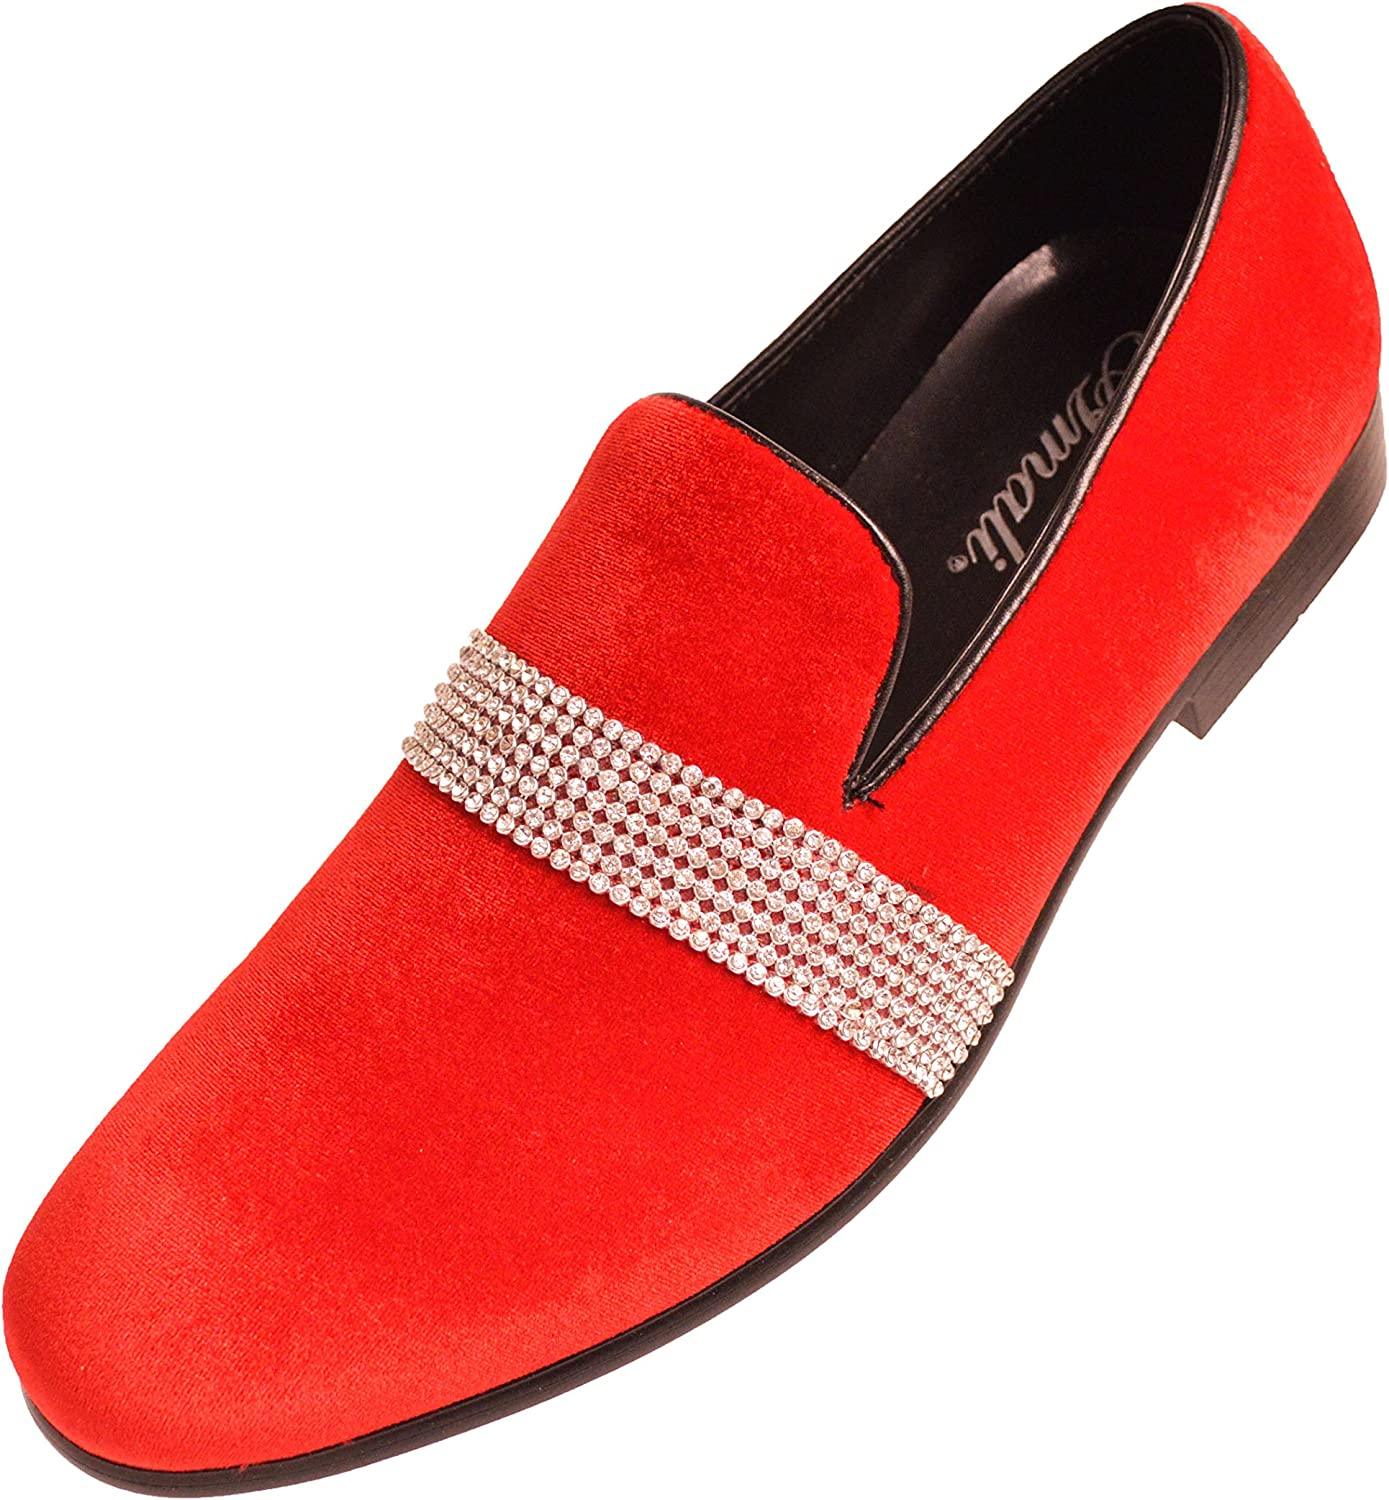 Men/'s Dress Casual Fancy Shoes Slip On Loafers Red//Black Rhinestones Smokers